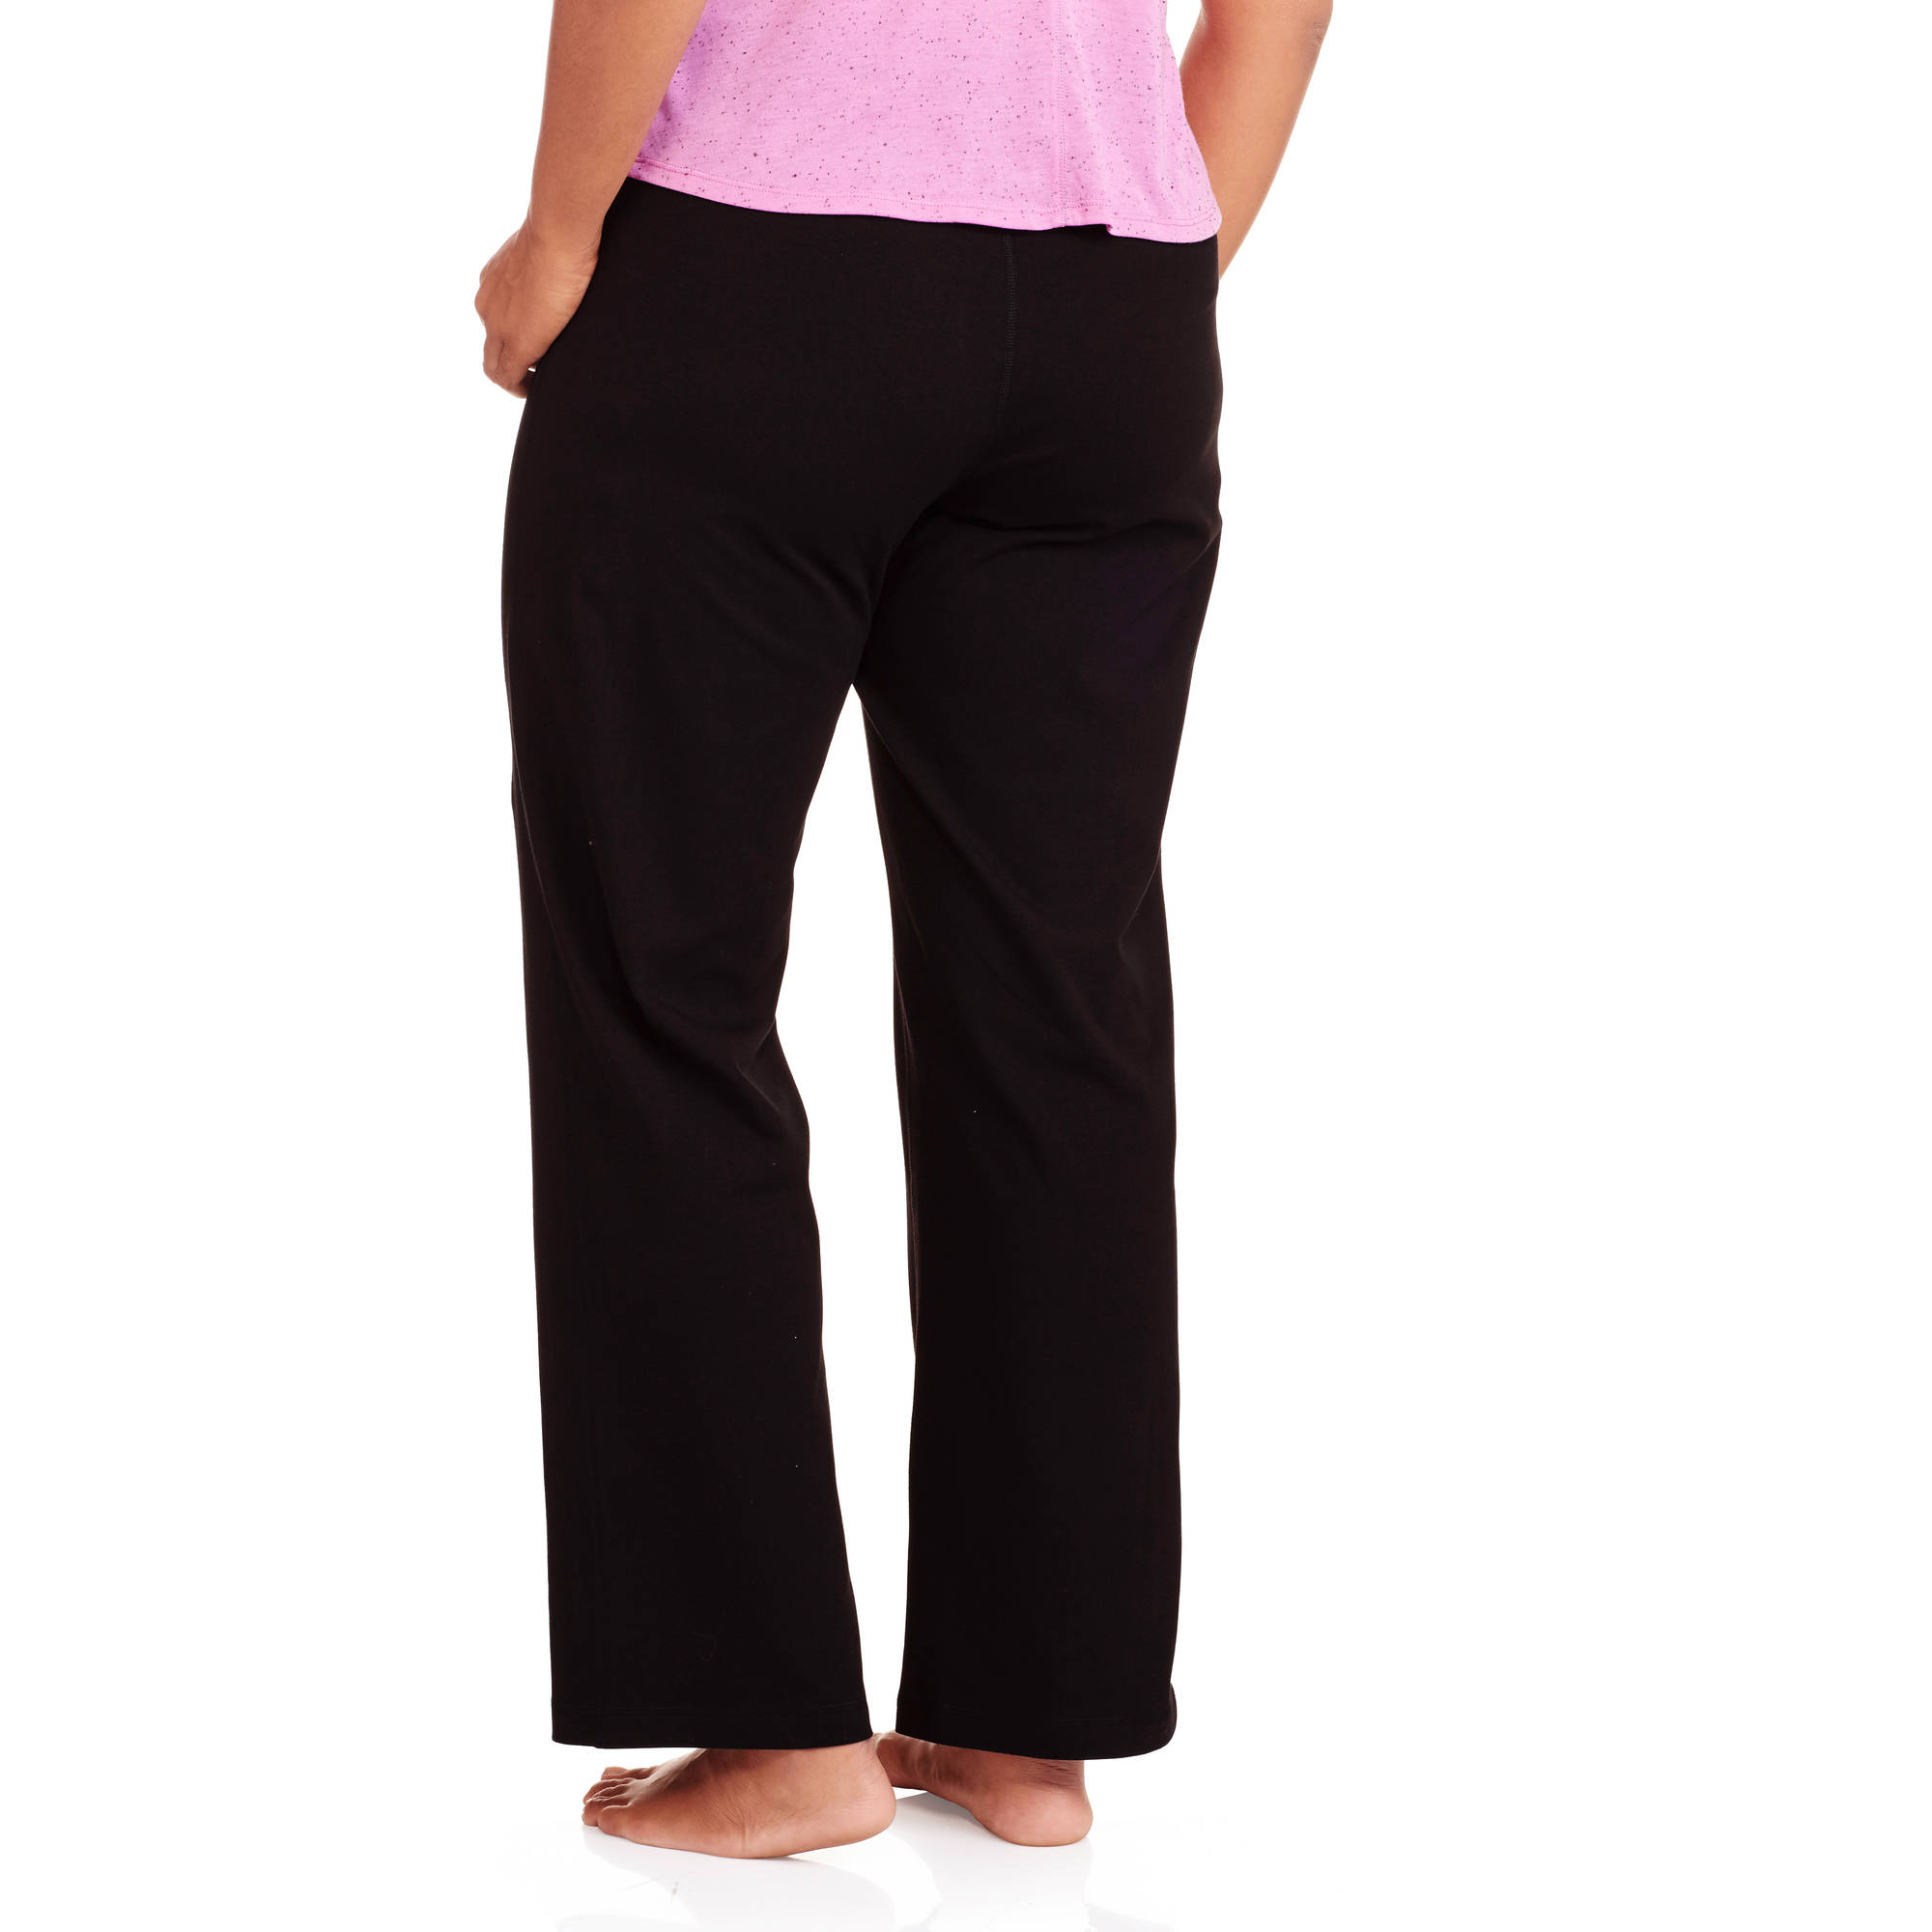 07784e57985e1 Danskin Now - Women's Plus Size Yoga Pant - Walmart.com